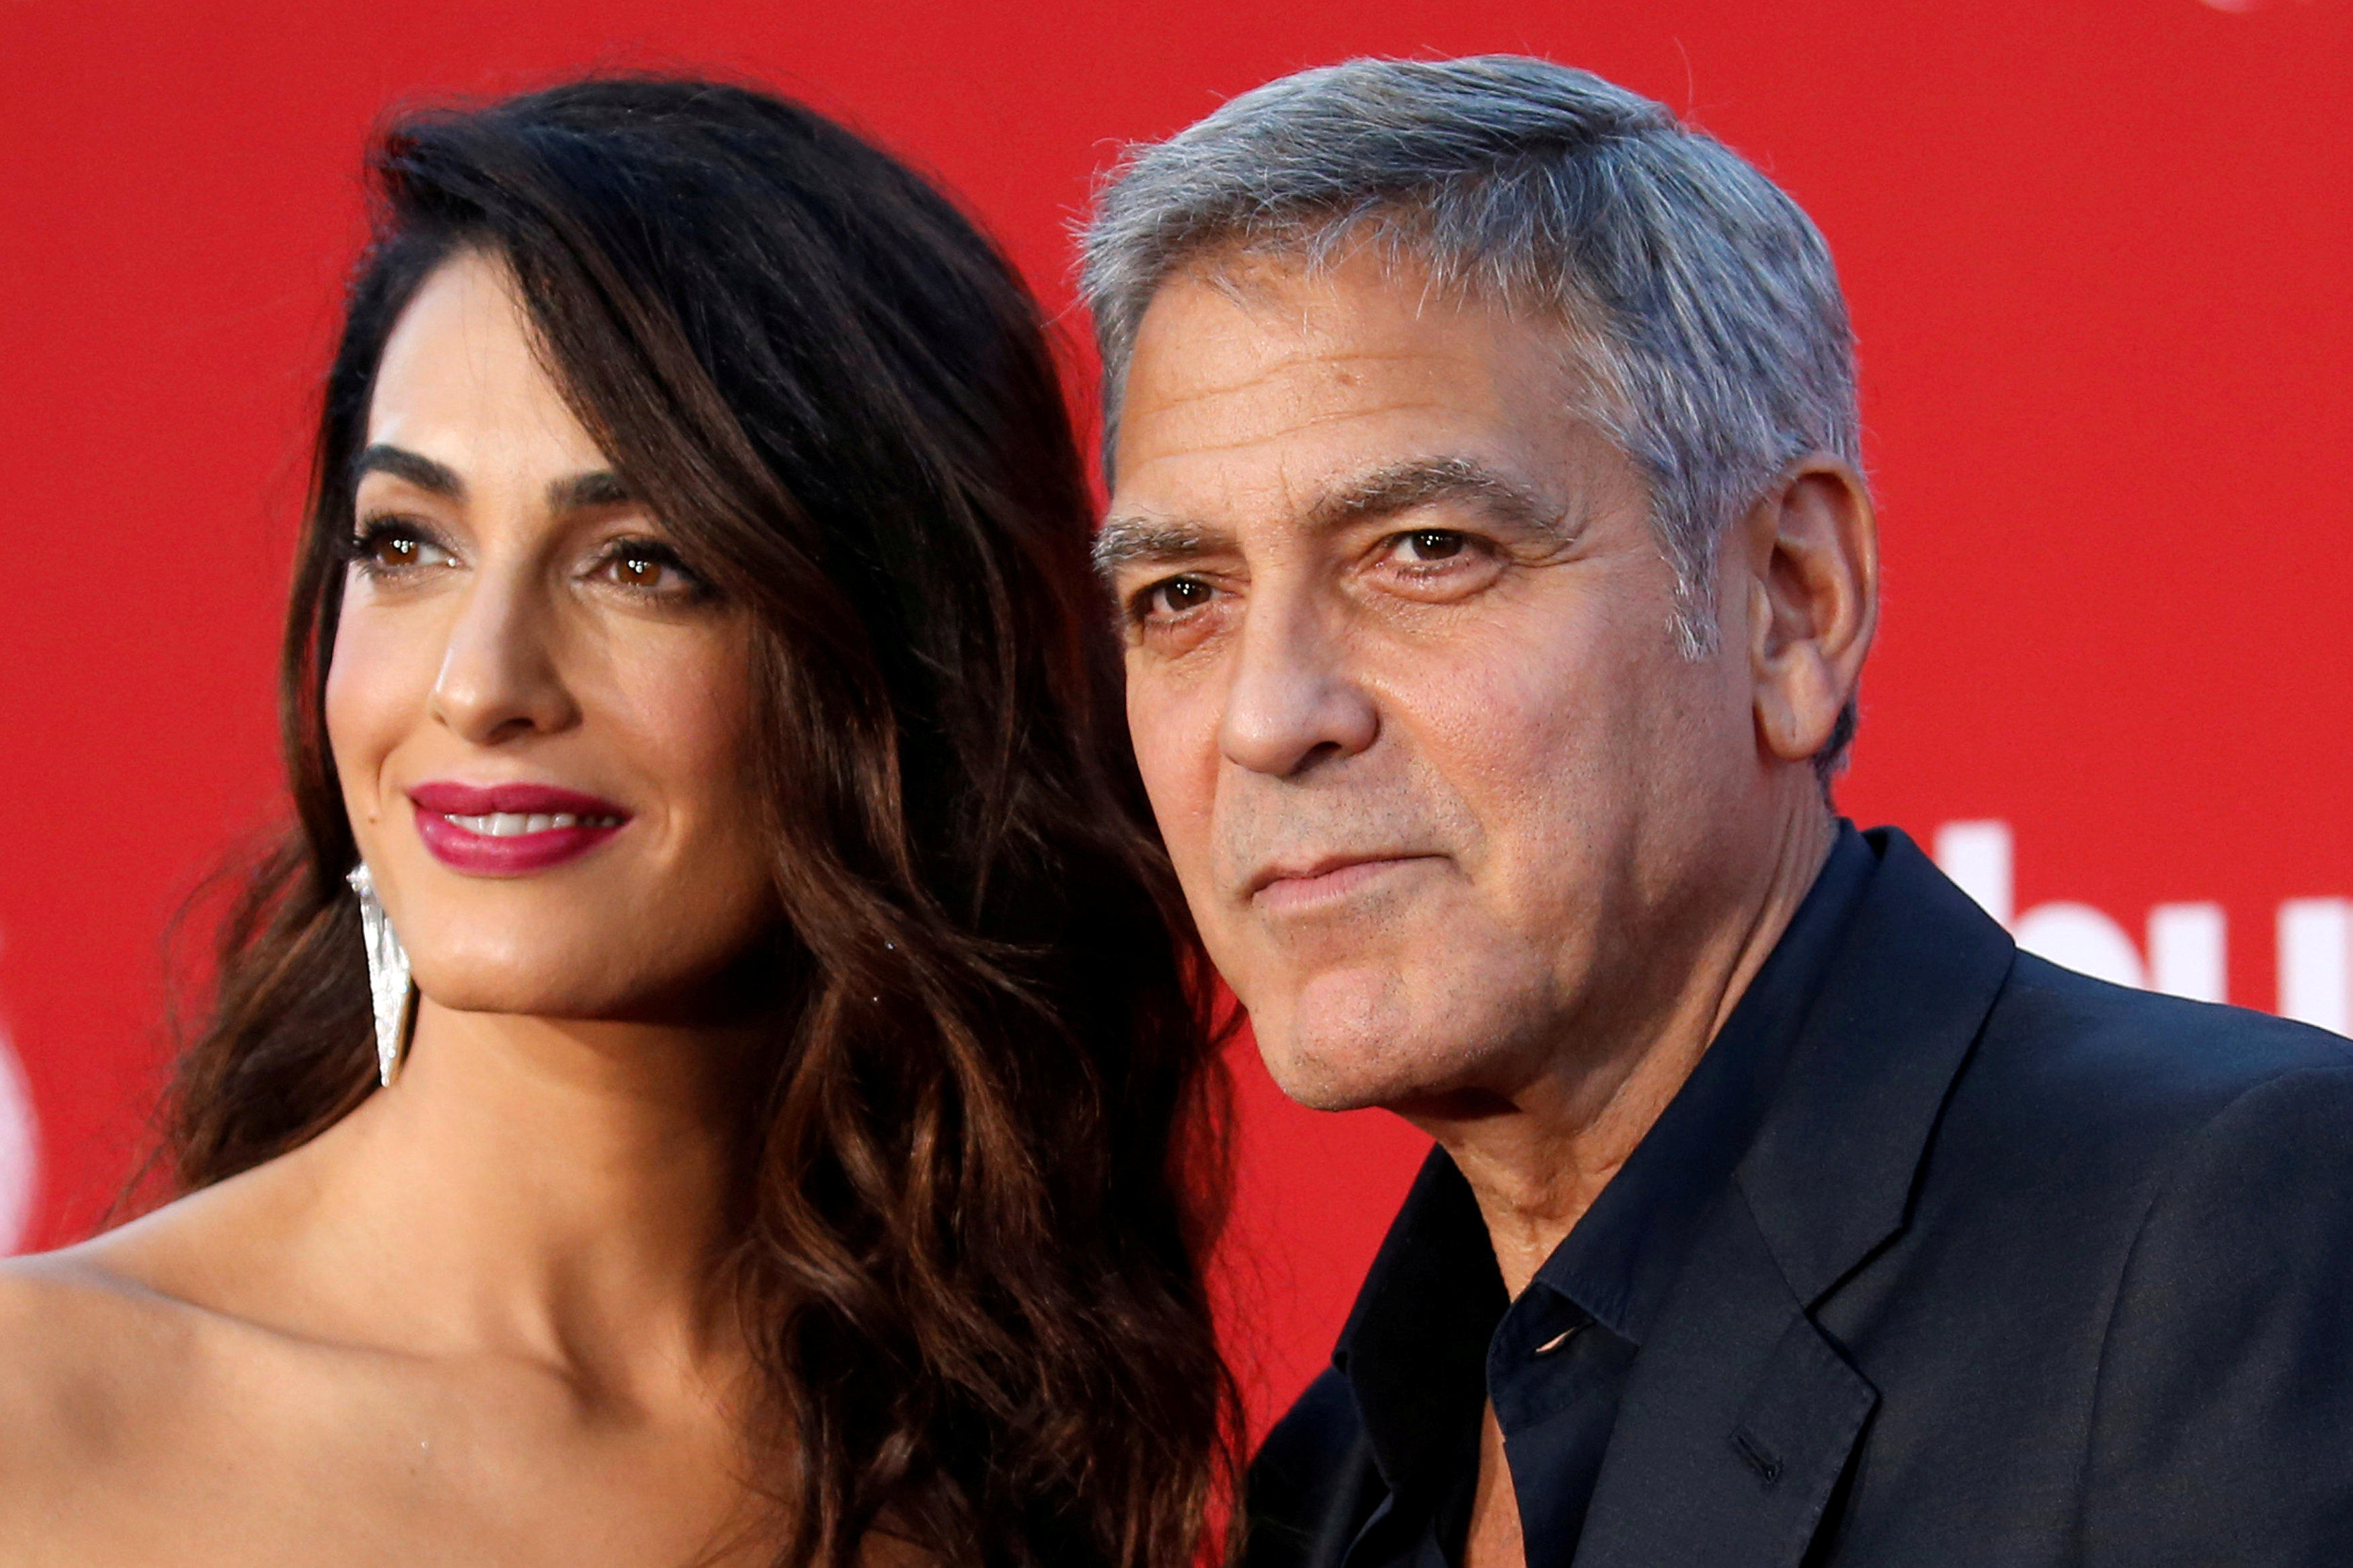 George and Amal Clooney donate $100,000 to aid migrant children, say